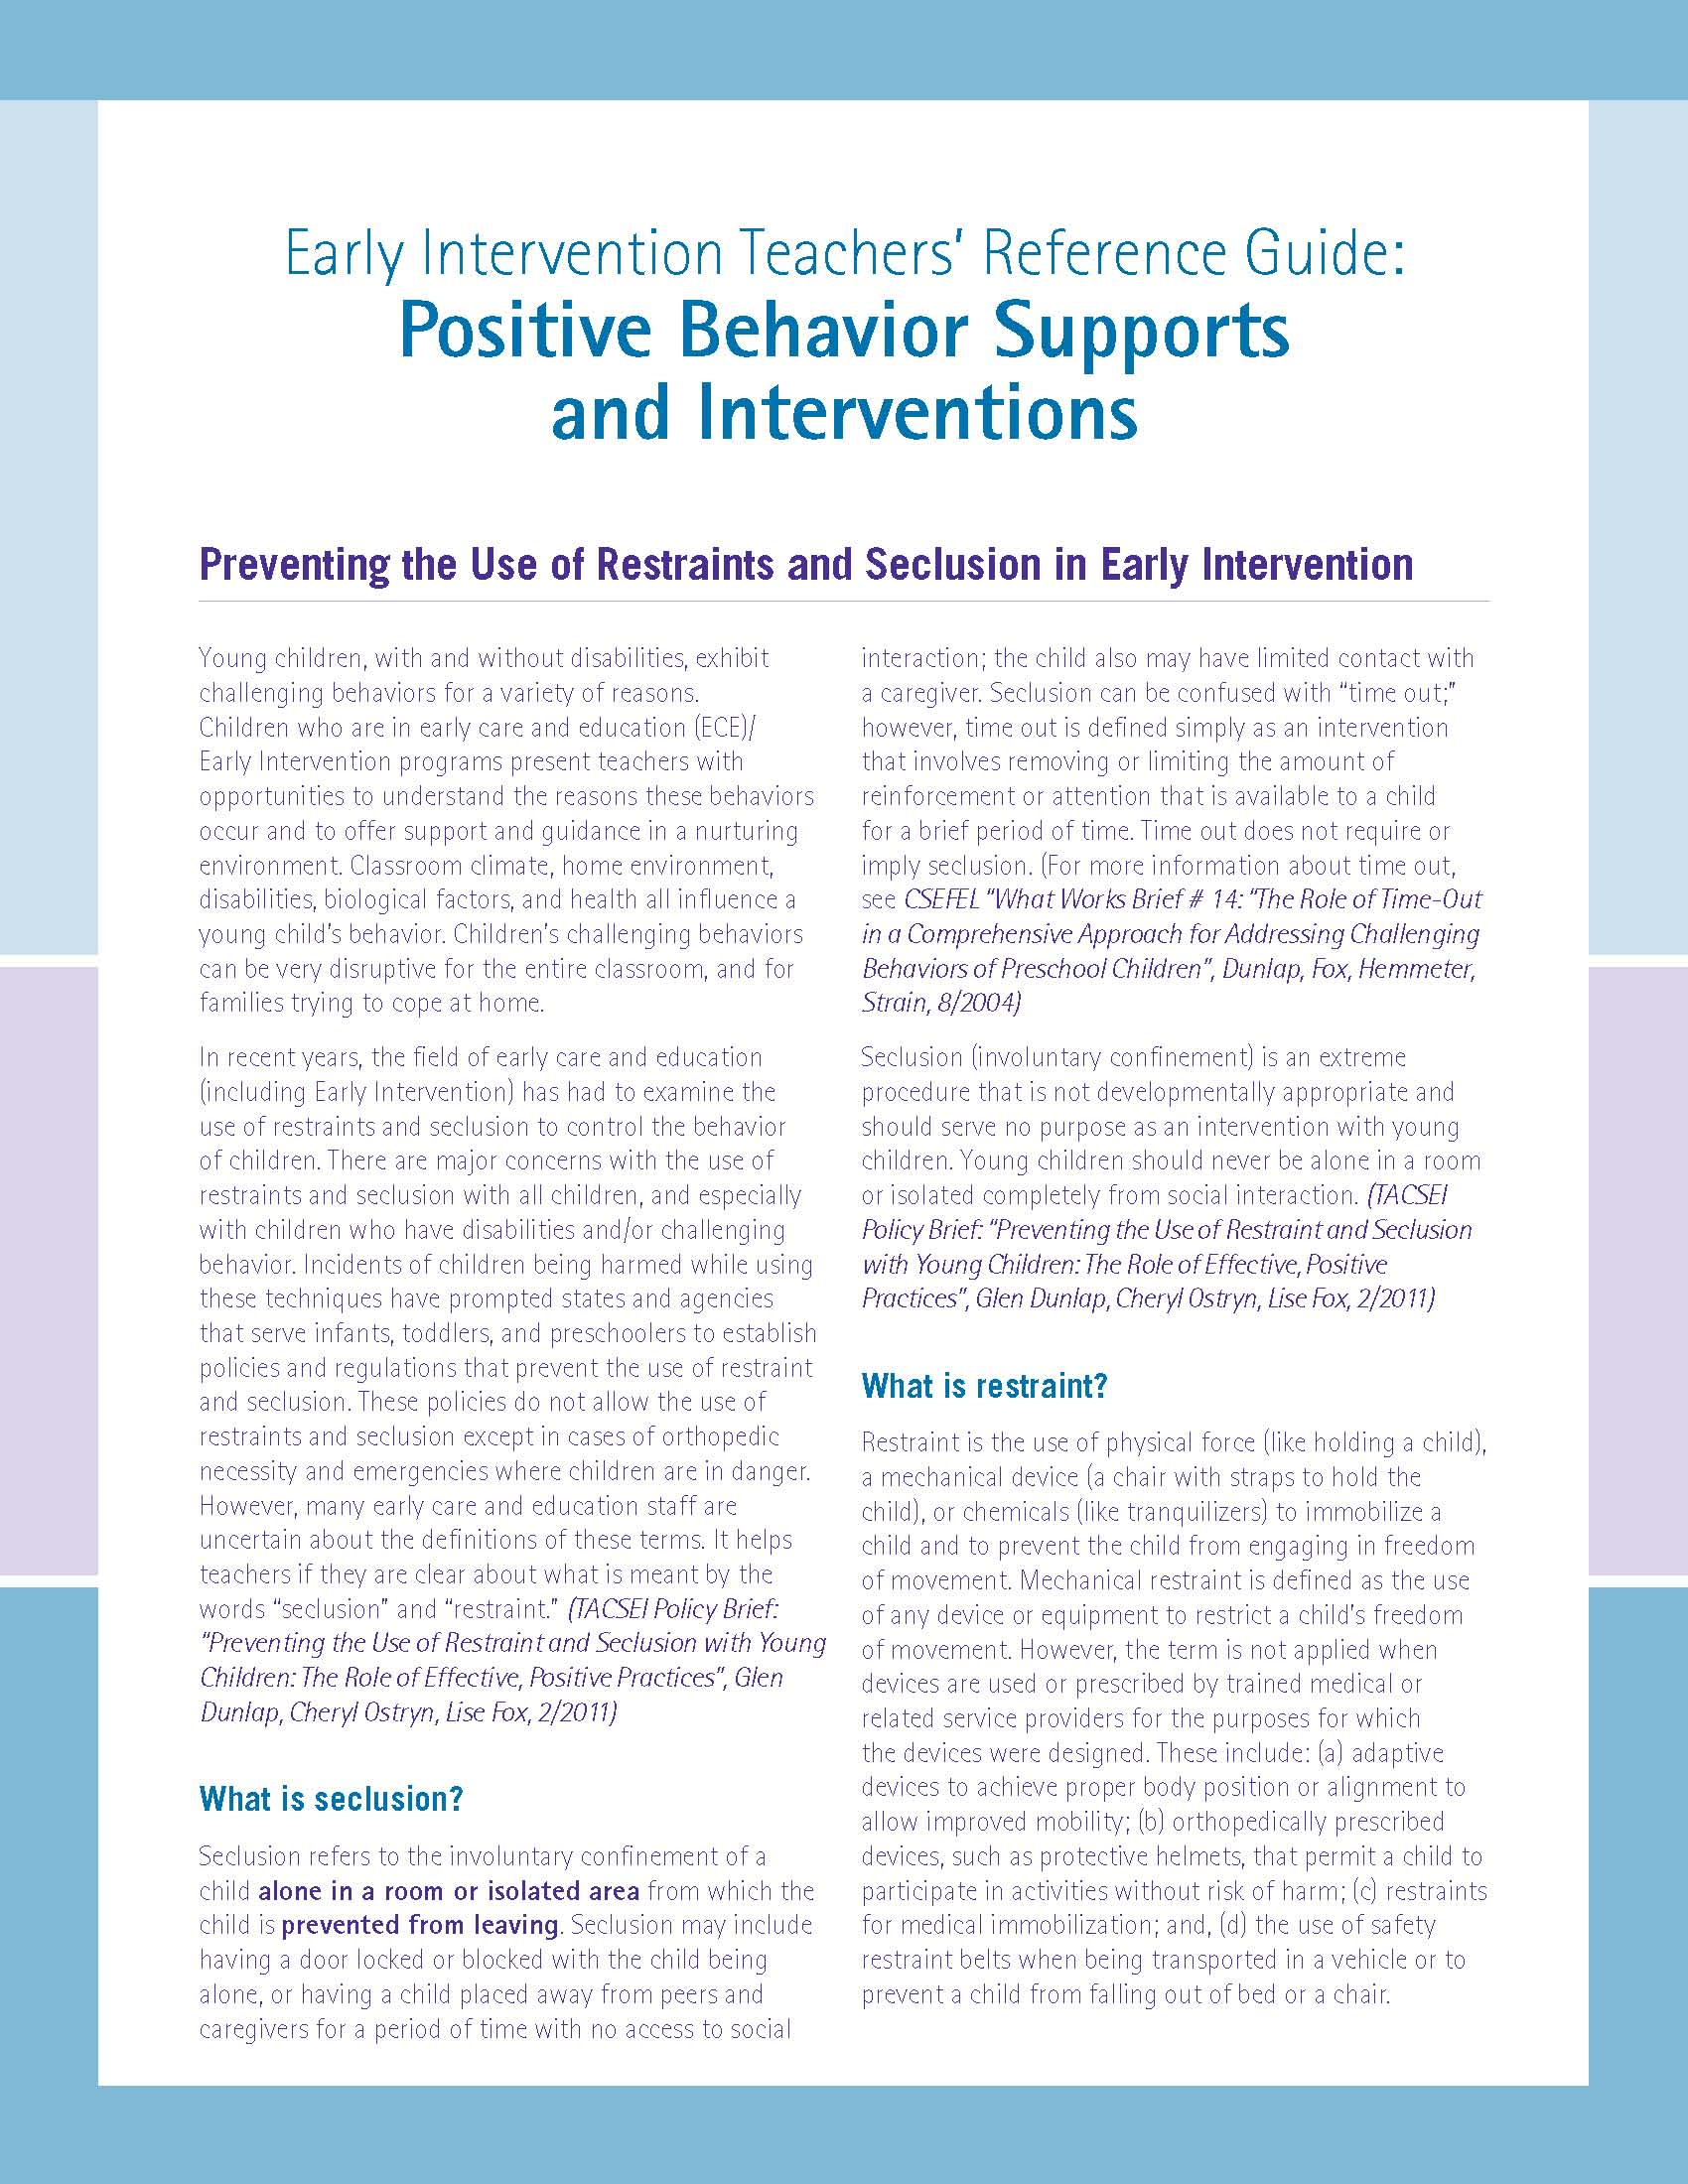 Early Intervention Teachers' Reference Guide: Positive Behavior Supports and Interventions